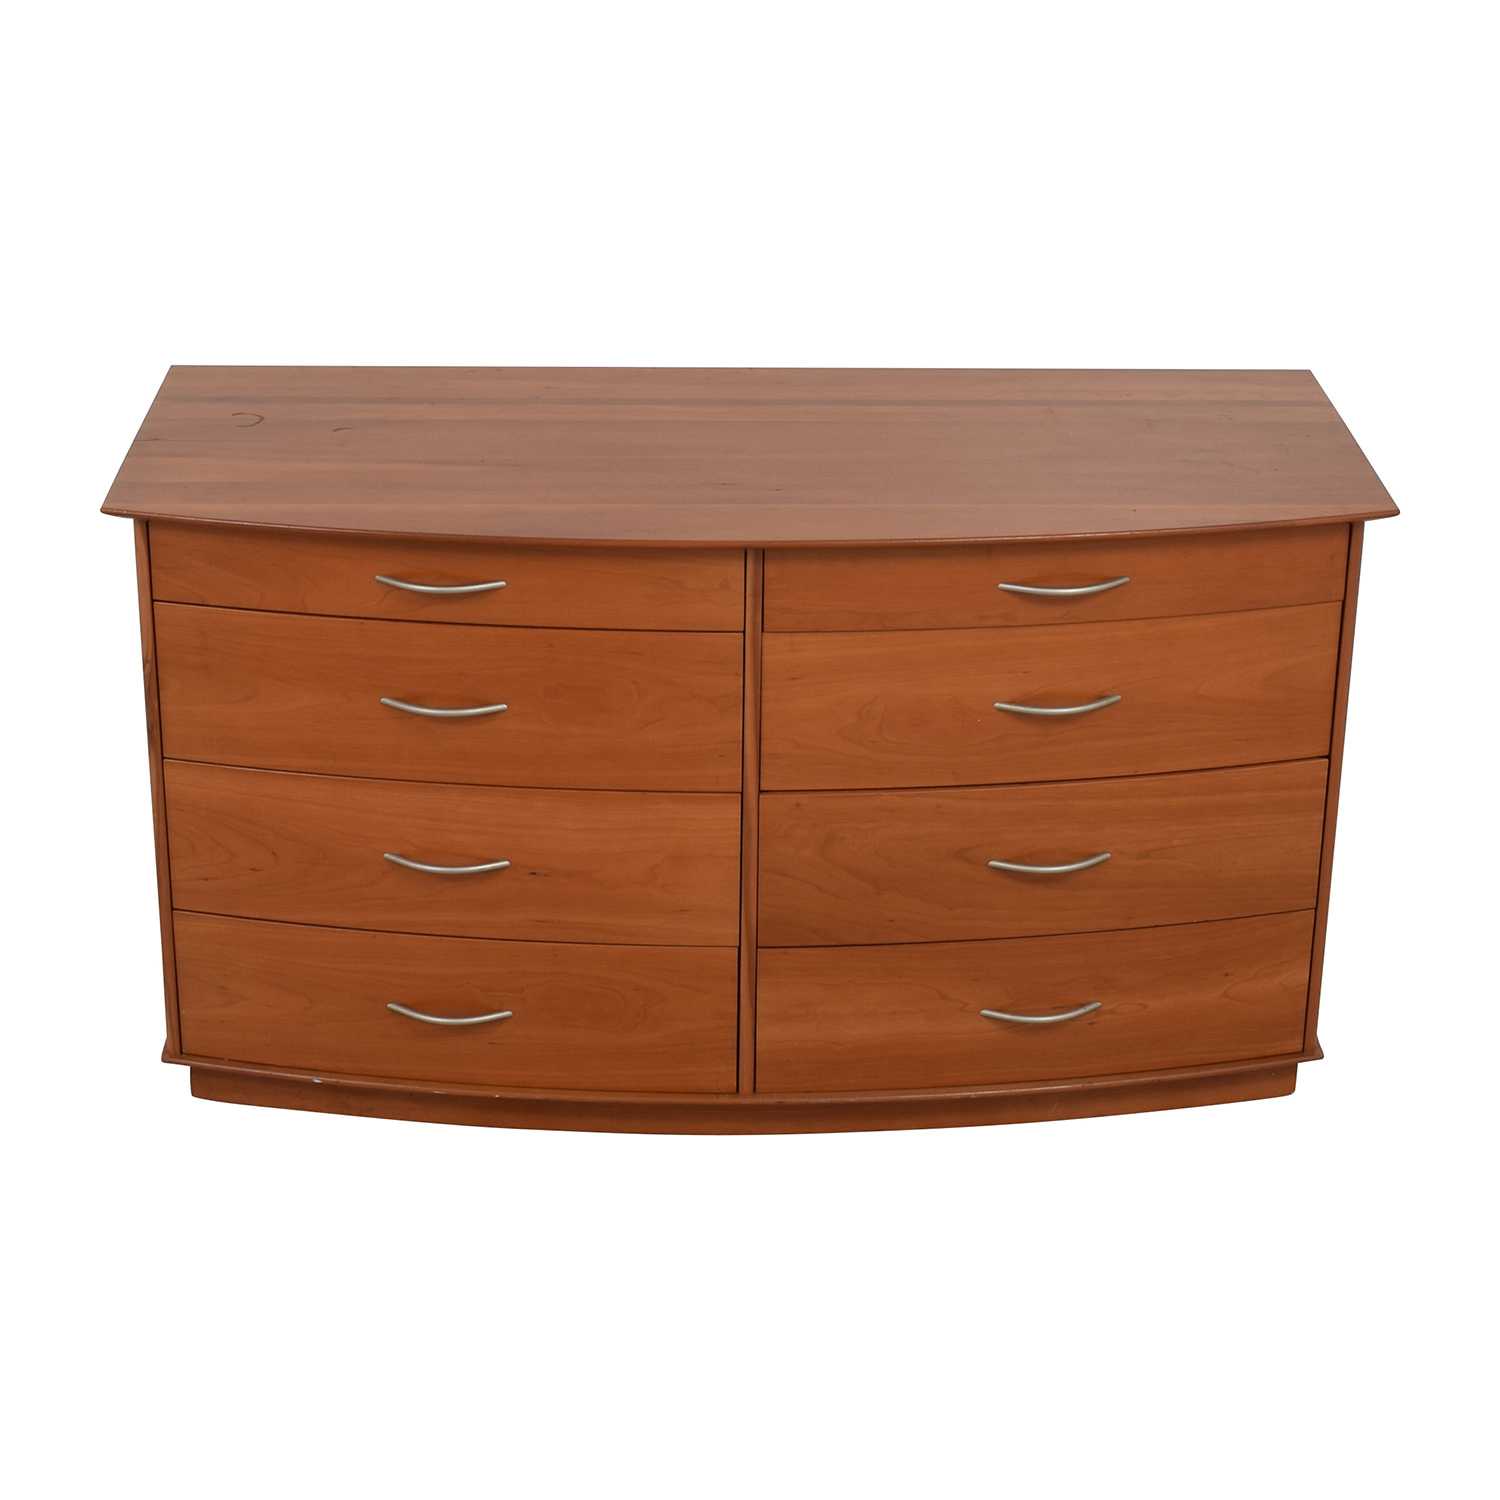 Light Brown Wooden Eight-Drawer Dresser Dressers